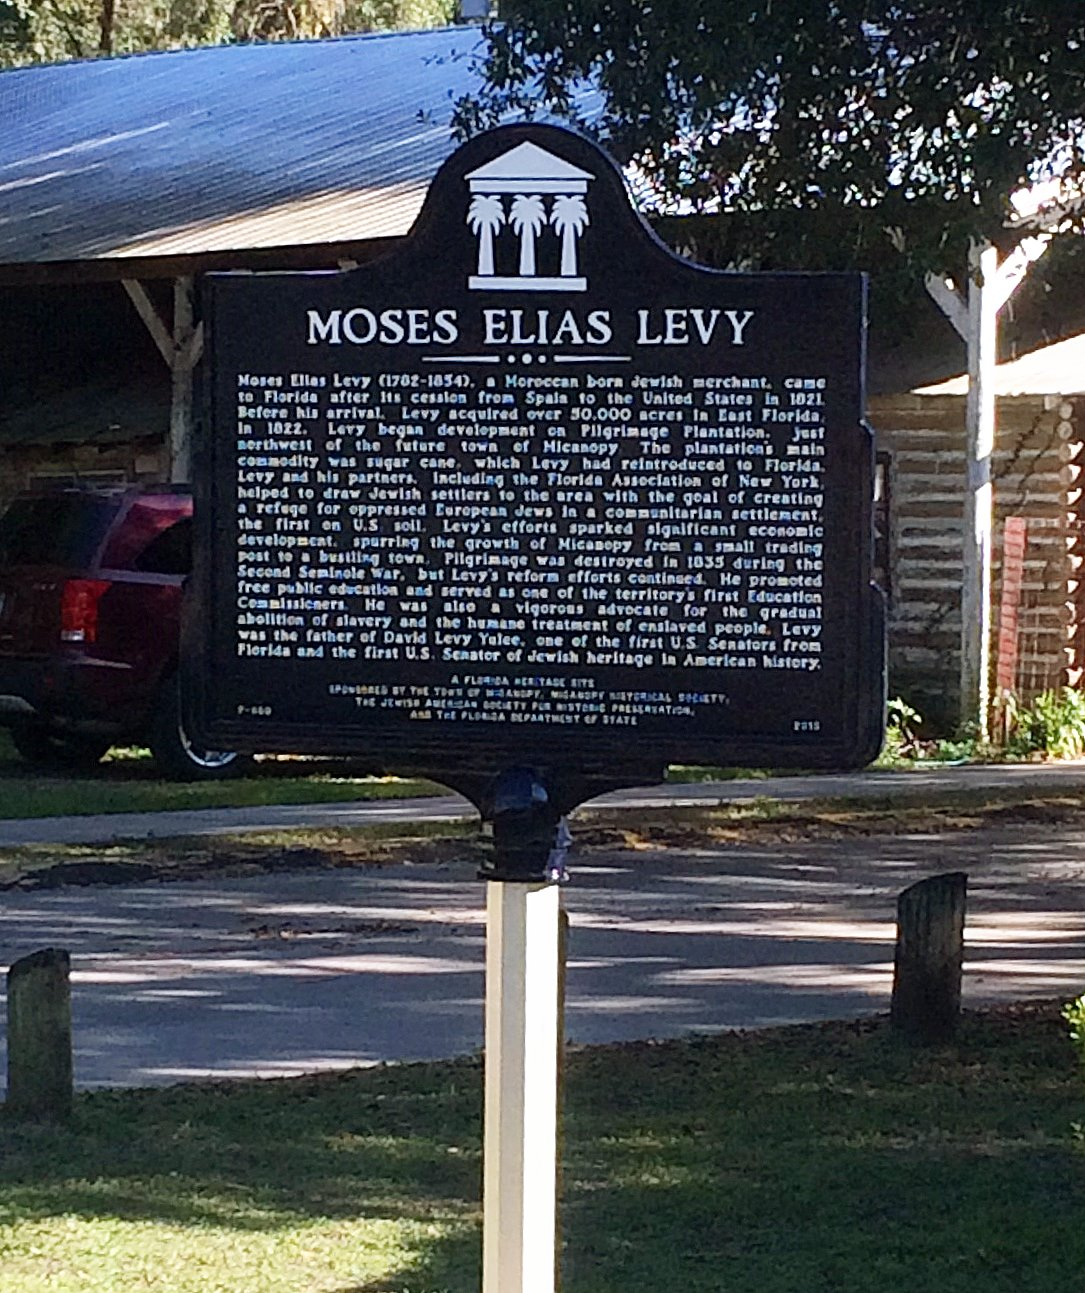 This marker commemorates the life of Moses Elias Levy and was dedicated in 2015 thanks to the Jewish American Society for Historic Preservation and the Florida Dept of State.